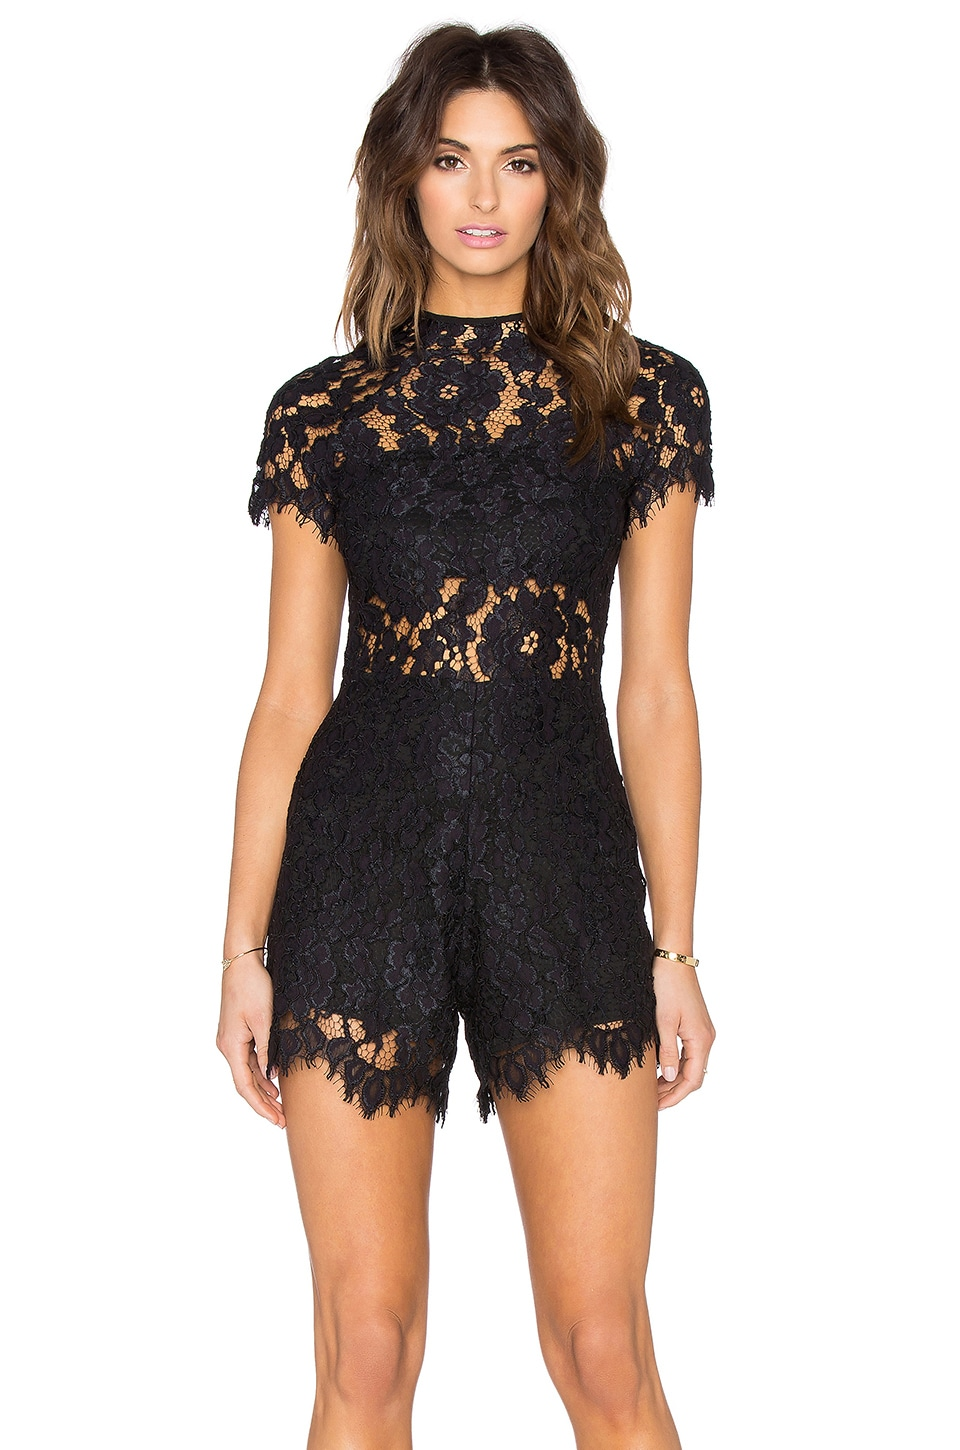 Alexis Lindsey Romper in Black Lace